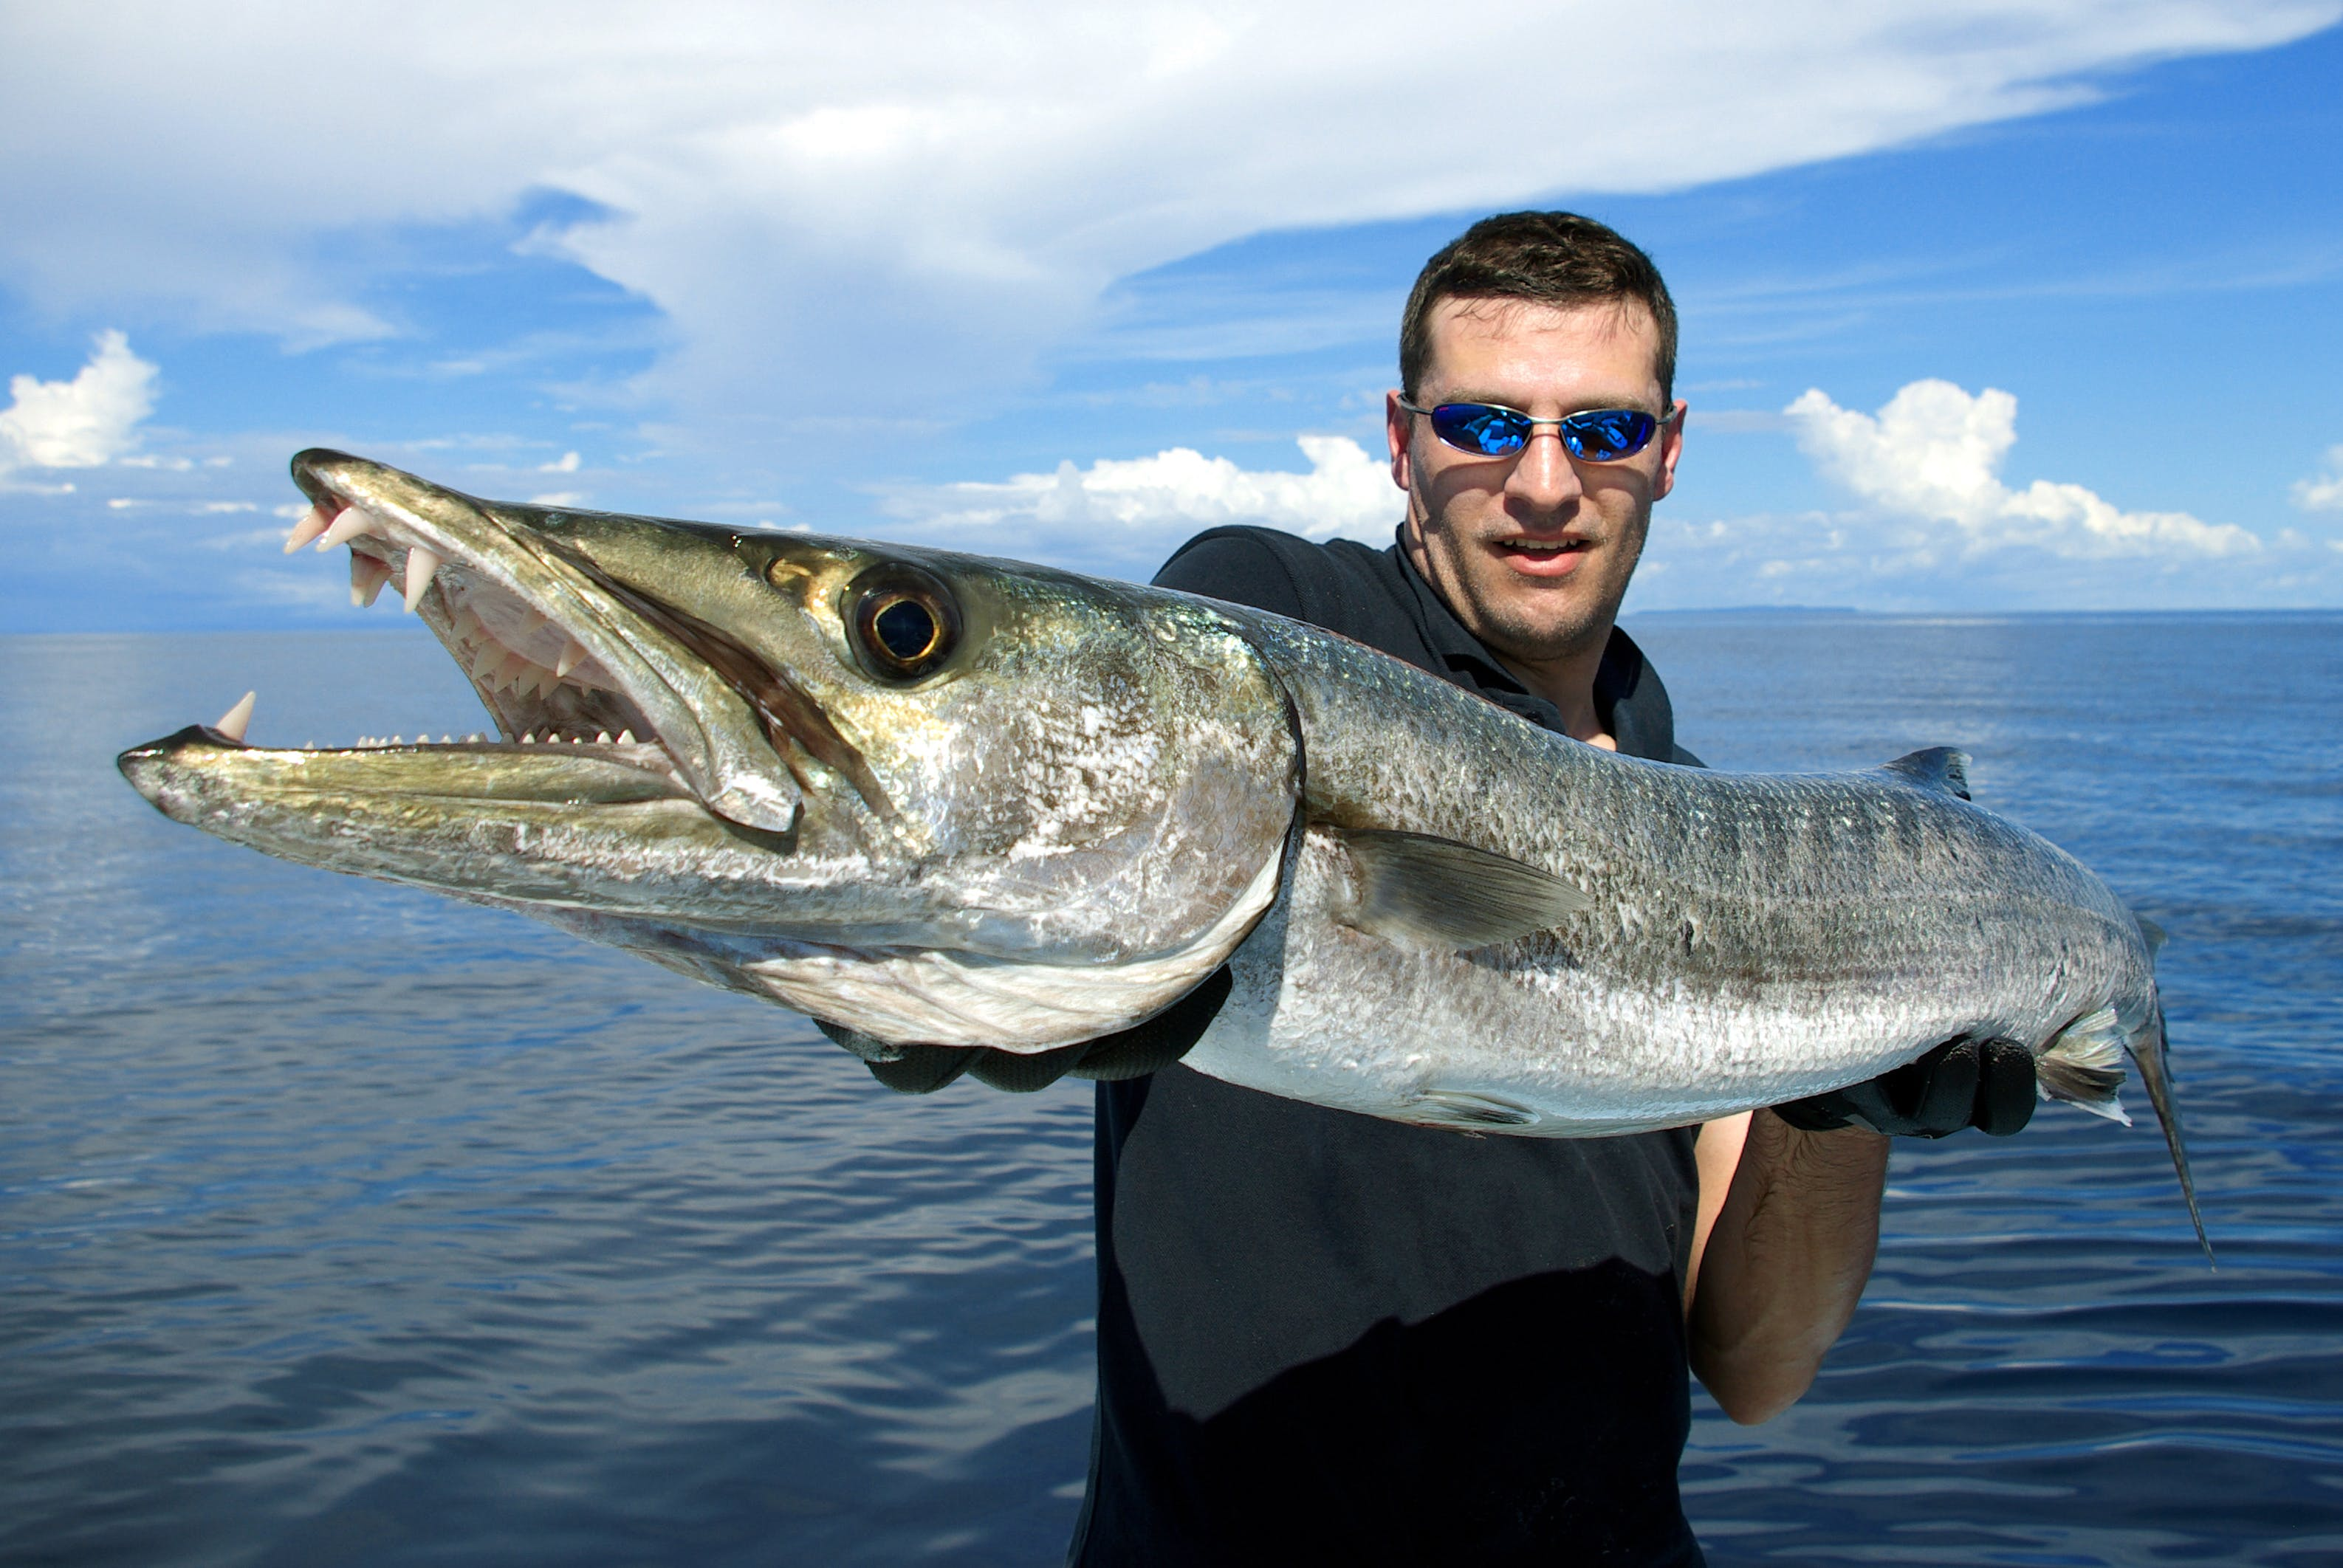 Angler with Barracuda near Harbourside at Marker 33 - Indian Rocks Beach